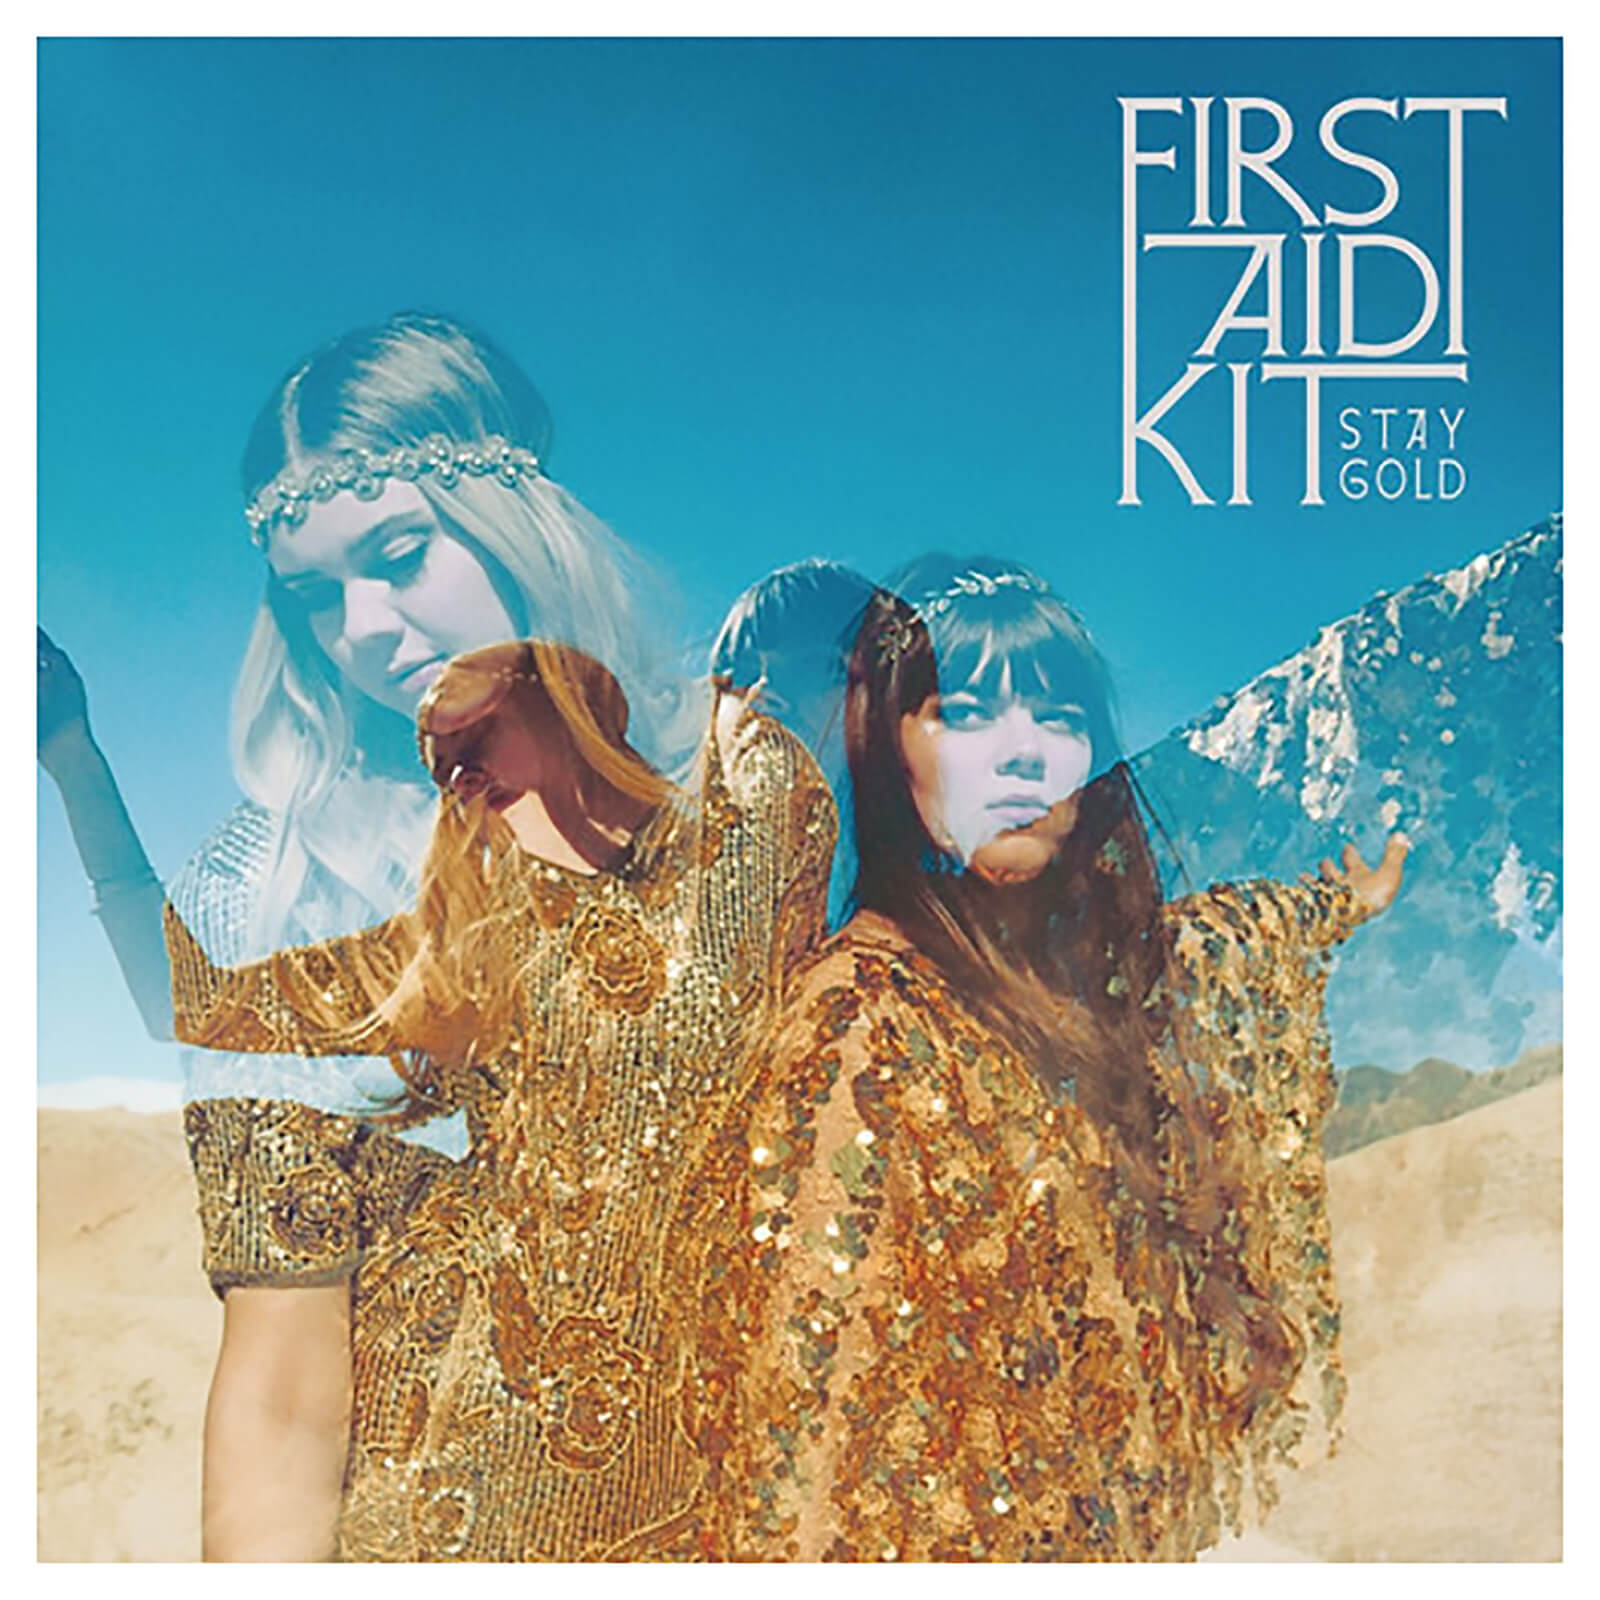 First Aid Kit - Stay Gold - Vinyl